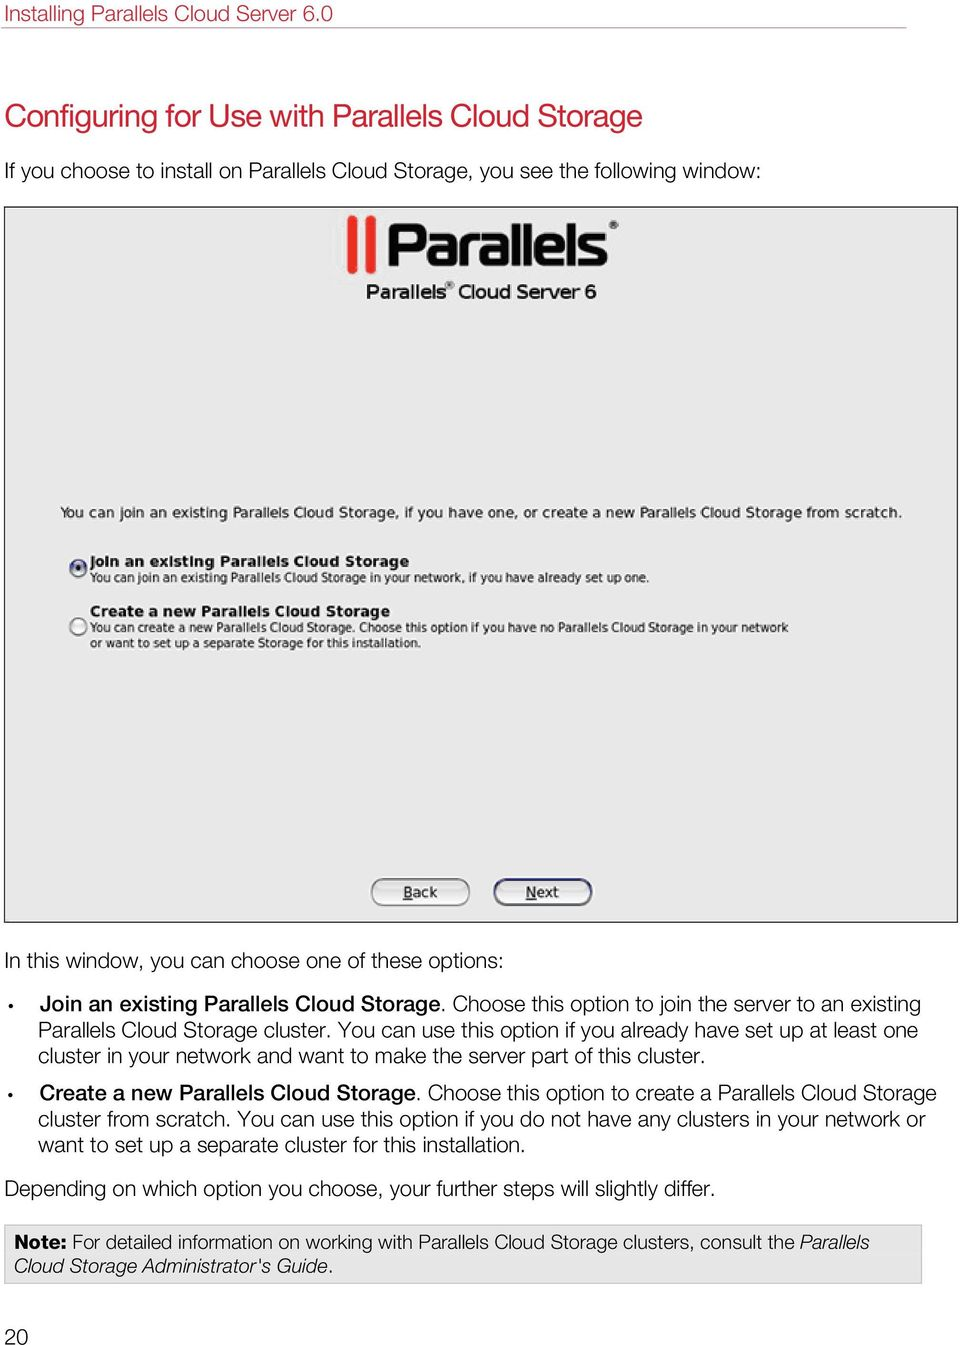 existing Parallels Cloud Storage. Choose this option to join the server to an existing Parallels Cloud Storage cluster.